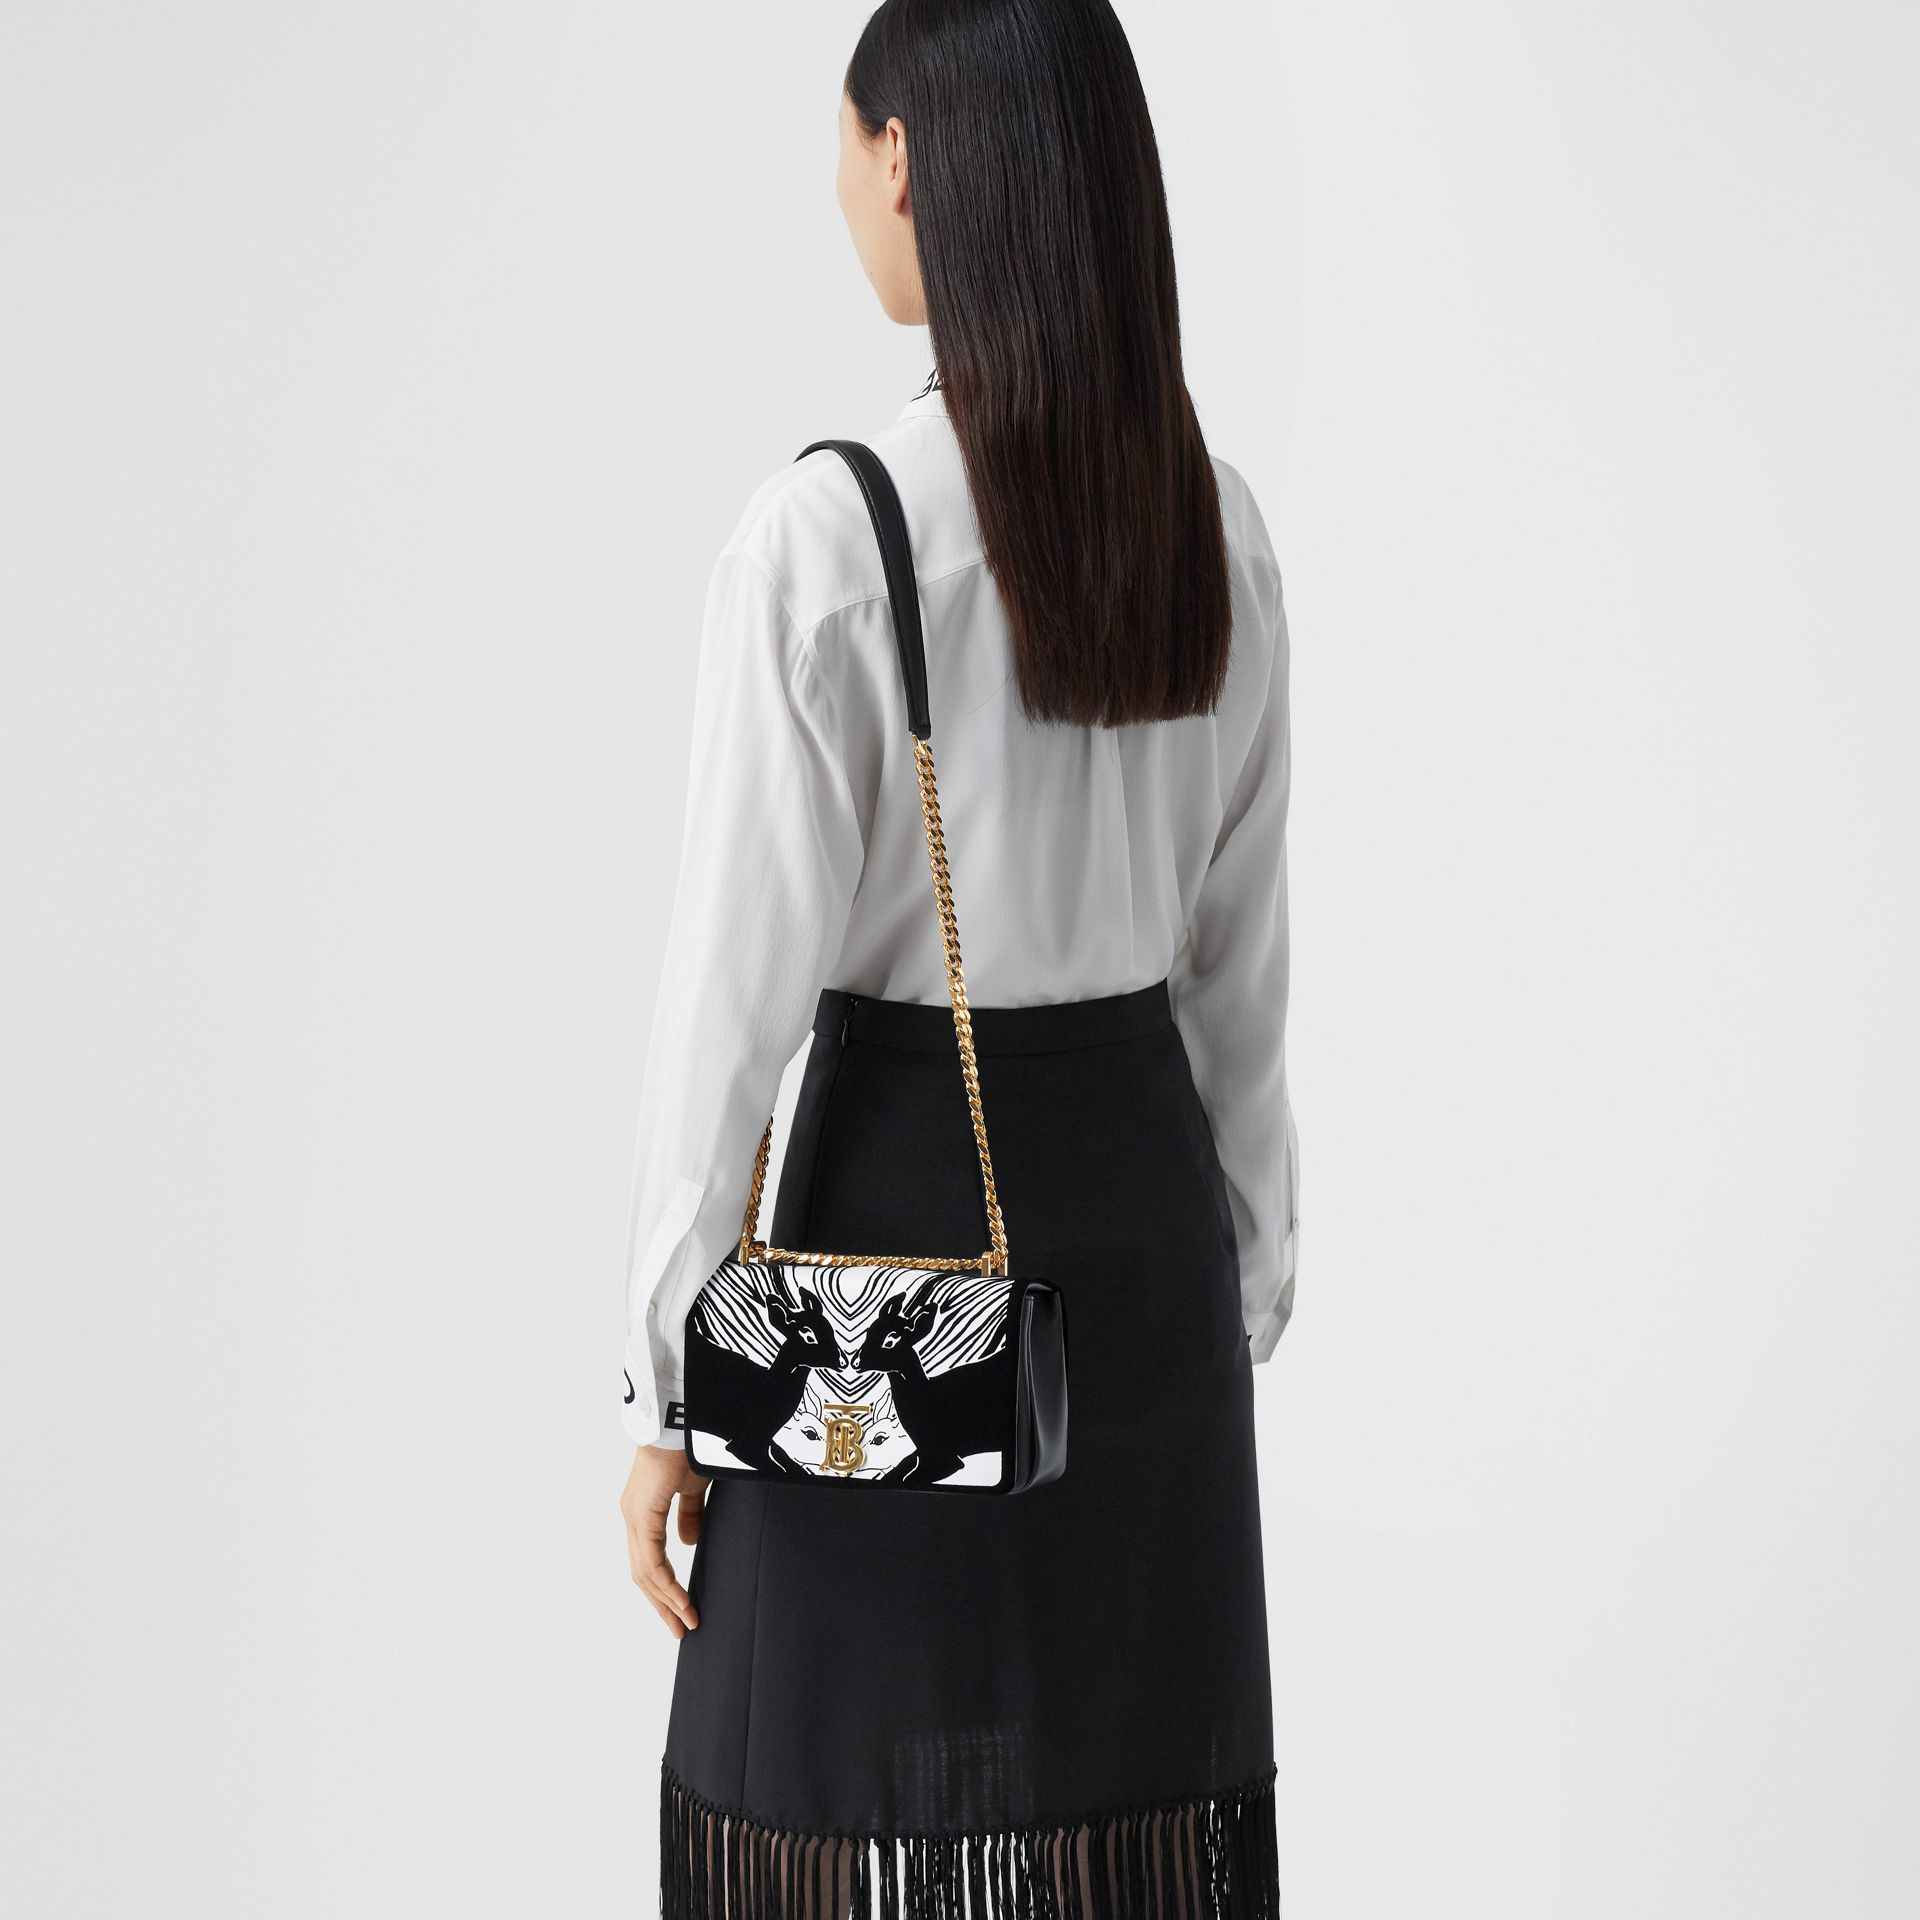 Small Deer Flock Leather Lola Bag in Black/white - Women | Burberry - gallery image 2